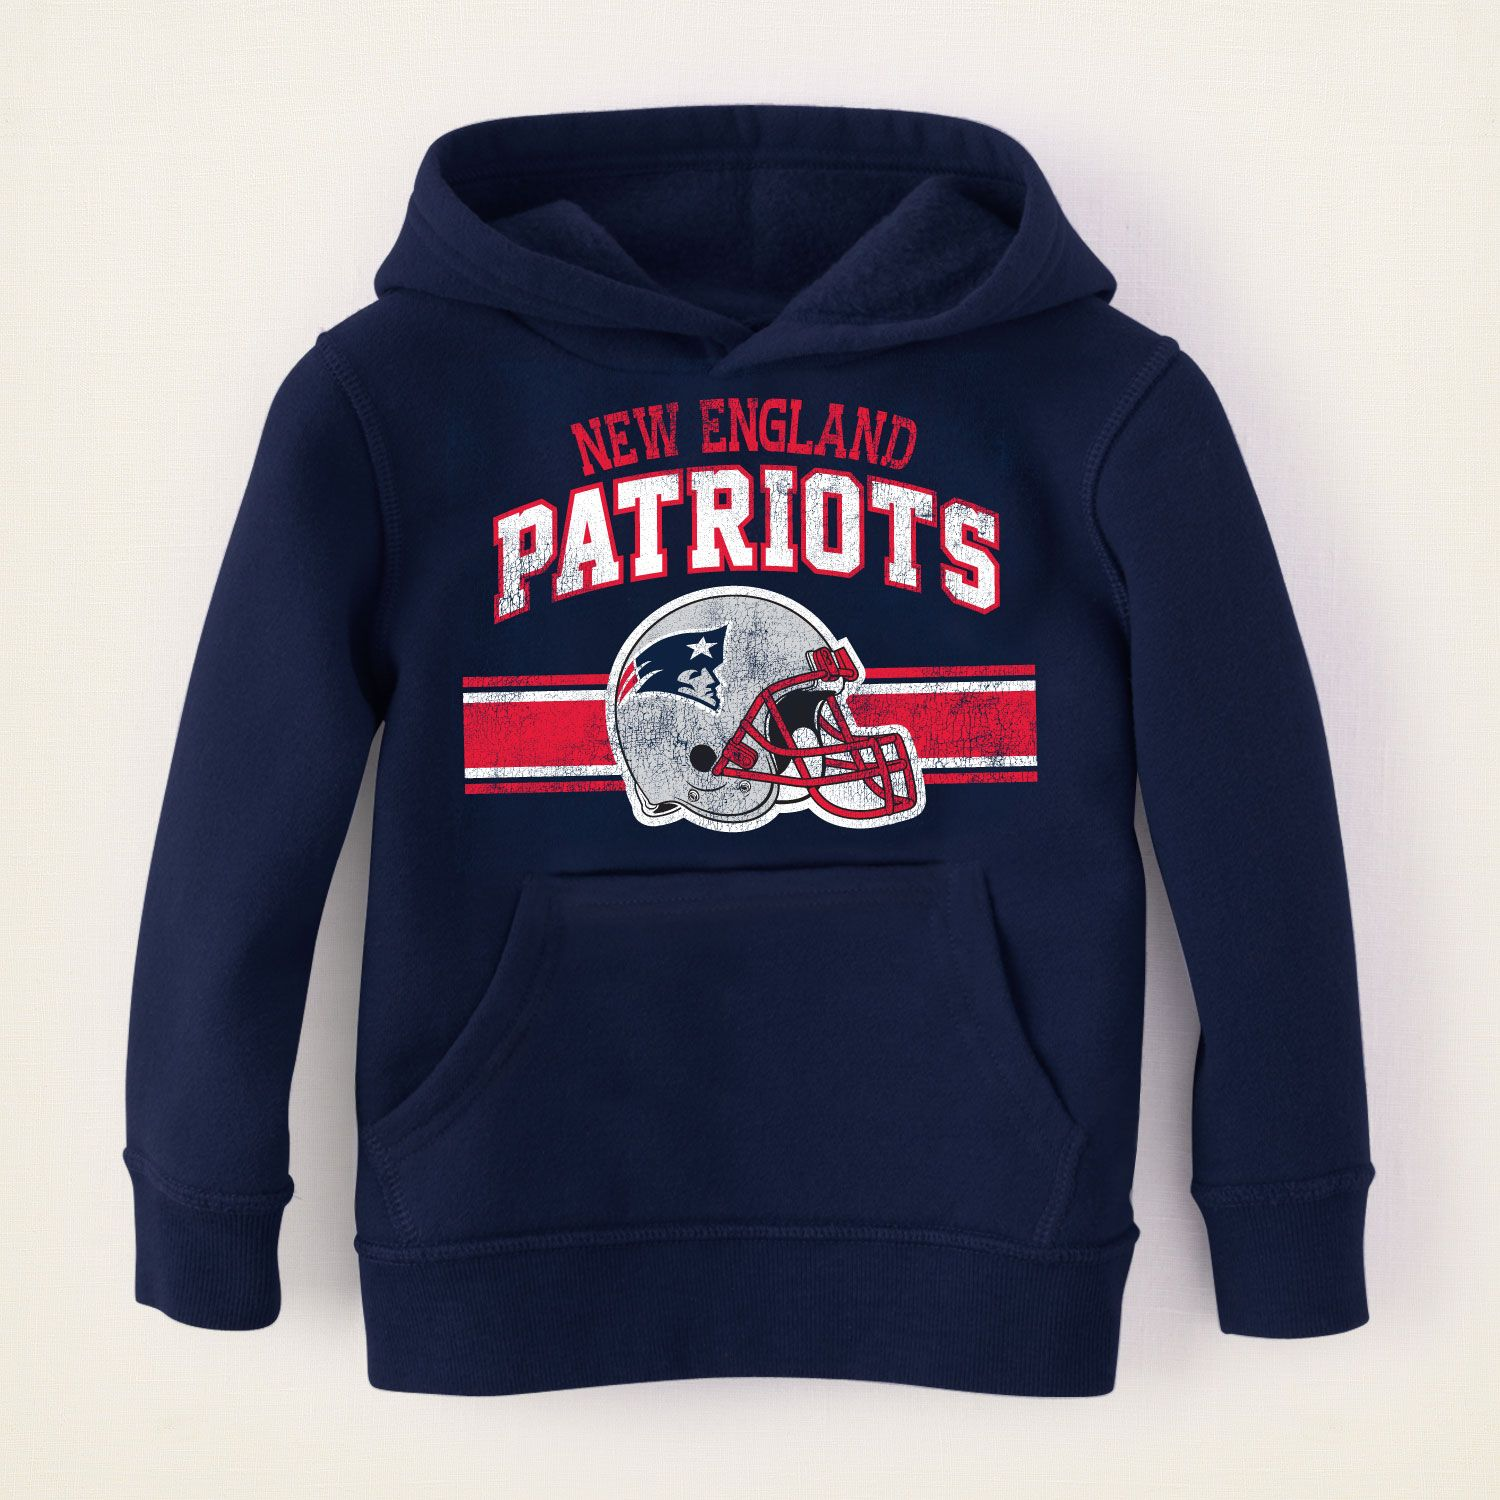 Baby Boy Long Sleeve Tops New England Patriots Graphic Hoodie Children S Clothing Kids Clothes Kids Activewear Graphic Hoodies Baby Boy Graphic Tees